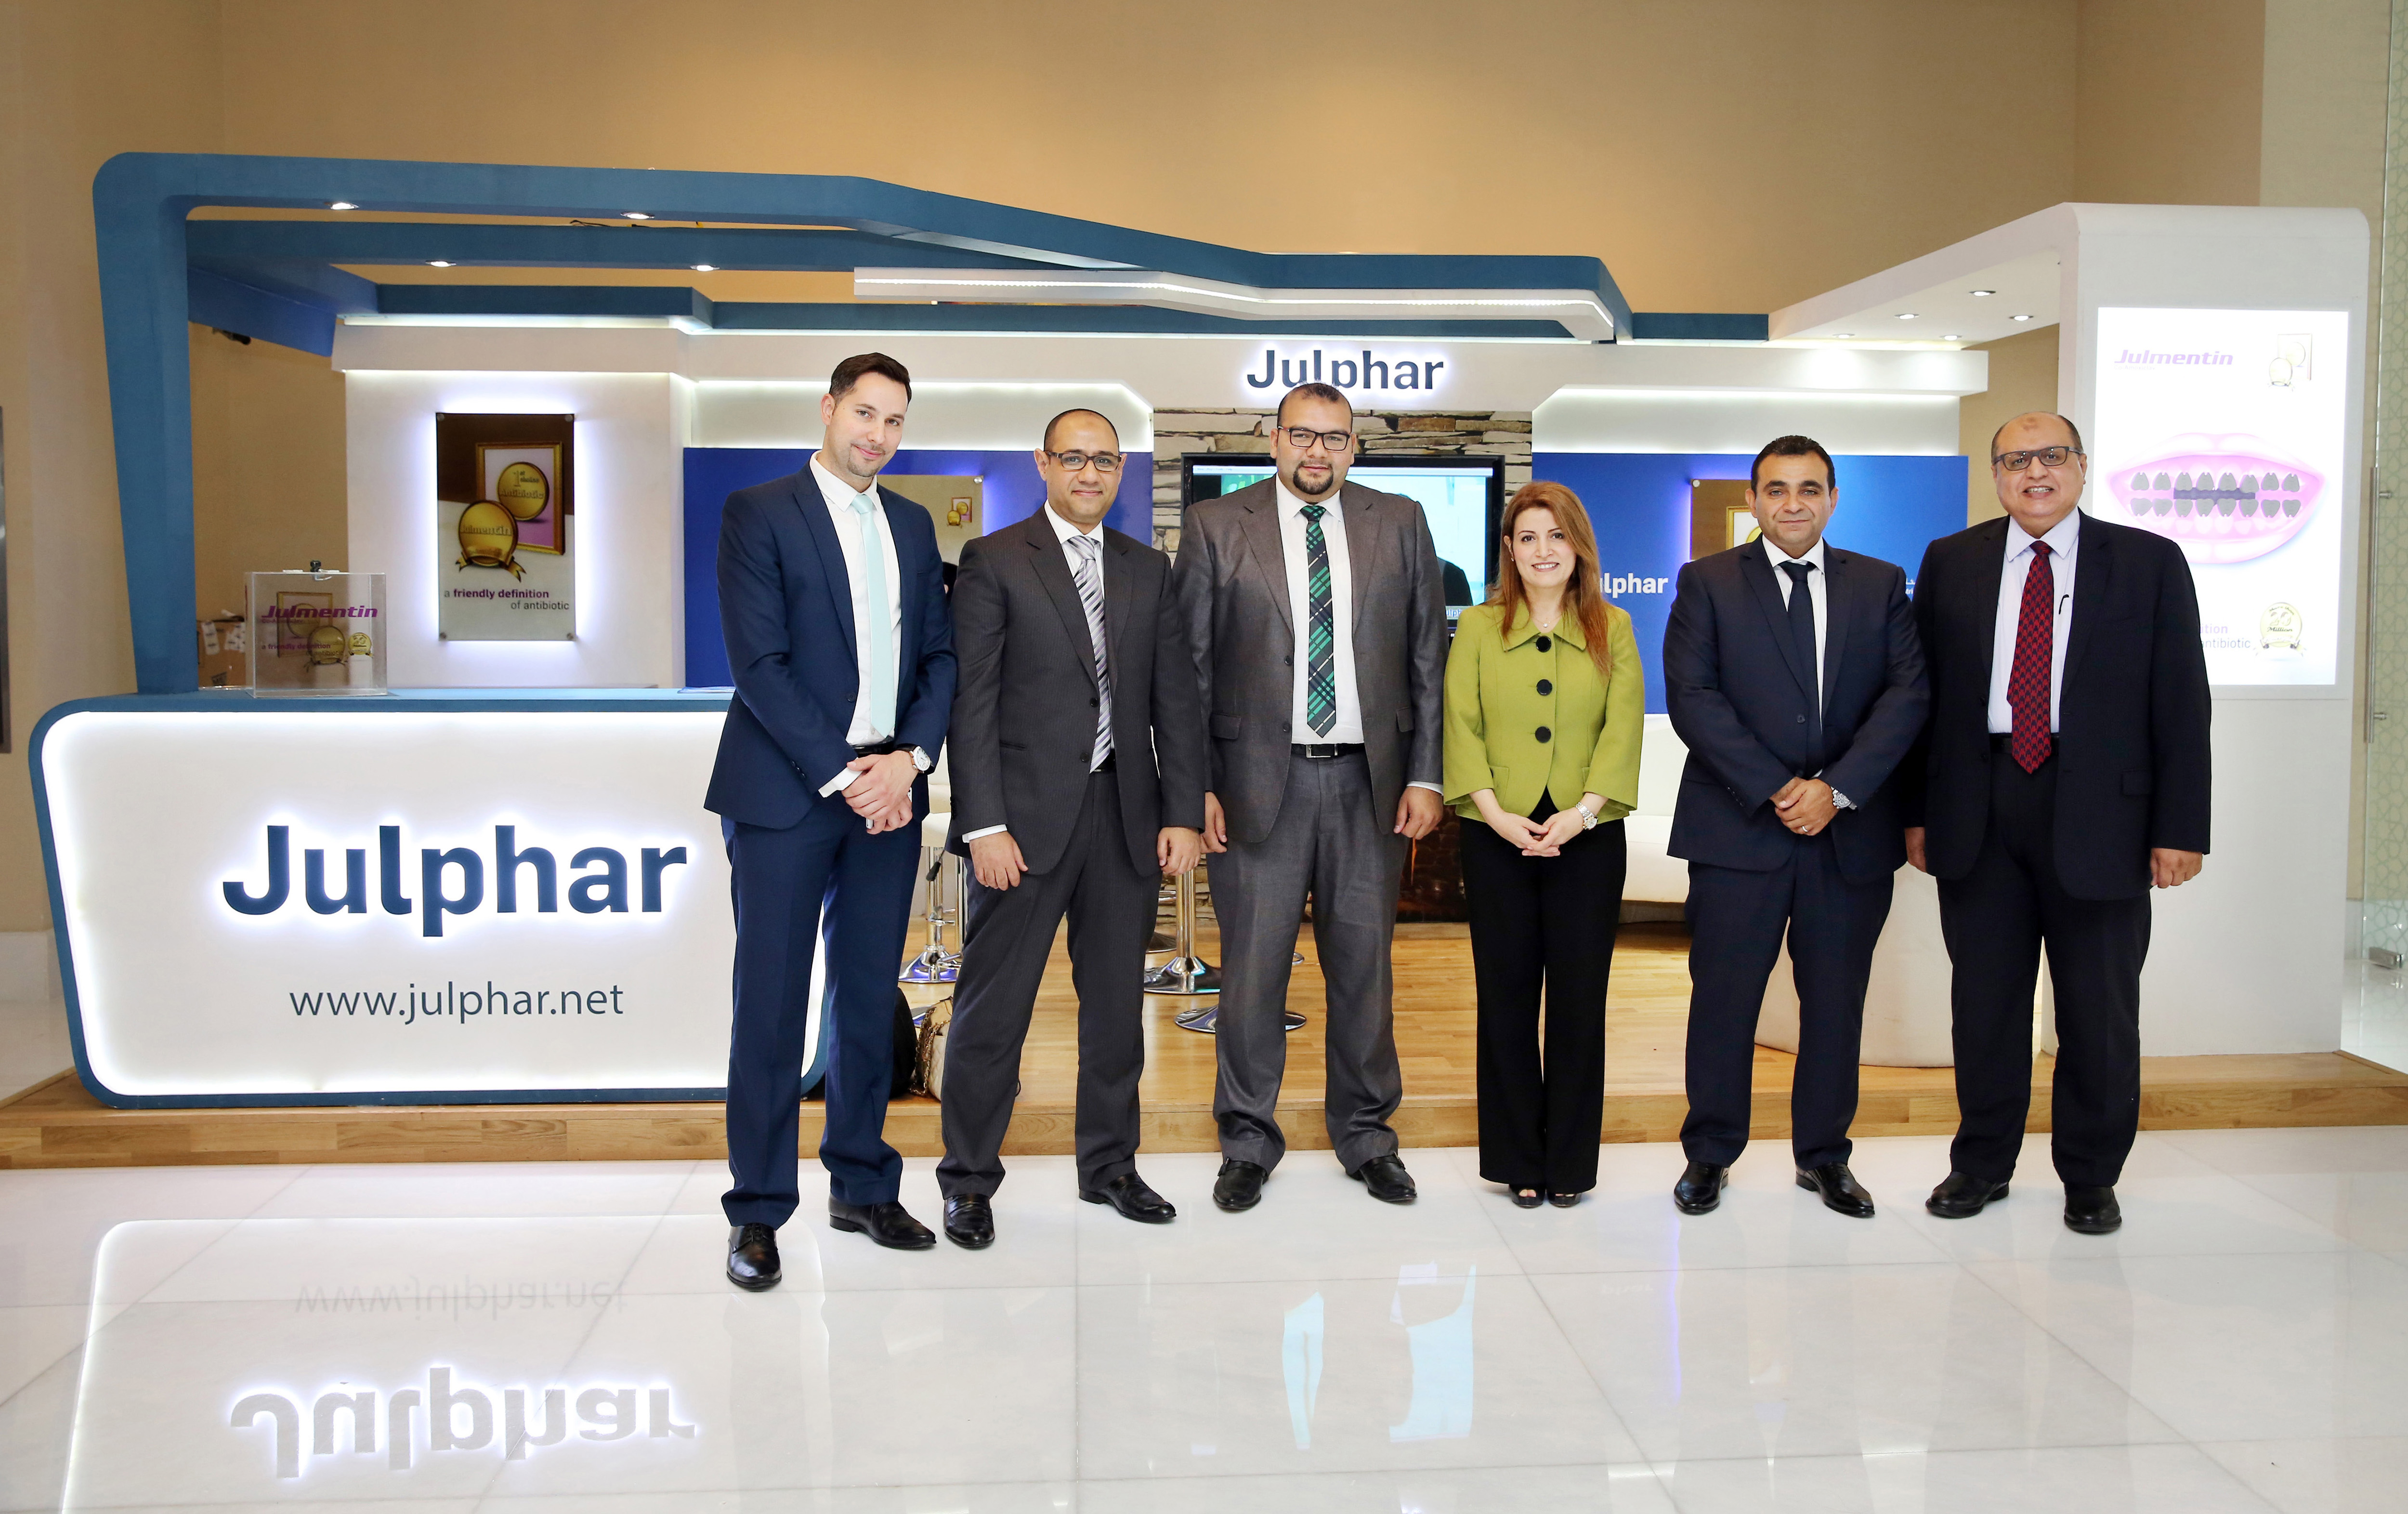 Julphar participated in the 8th International Conference and Exhibition on Dentistry & Oral Care